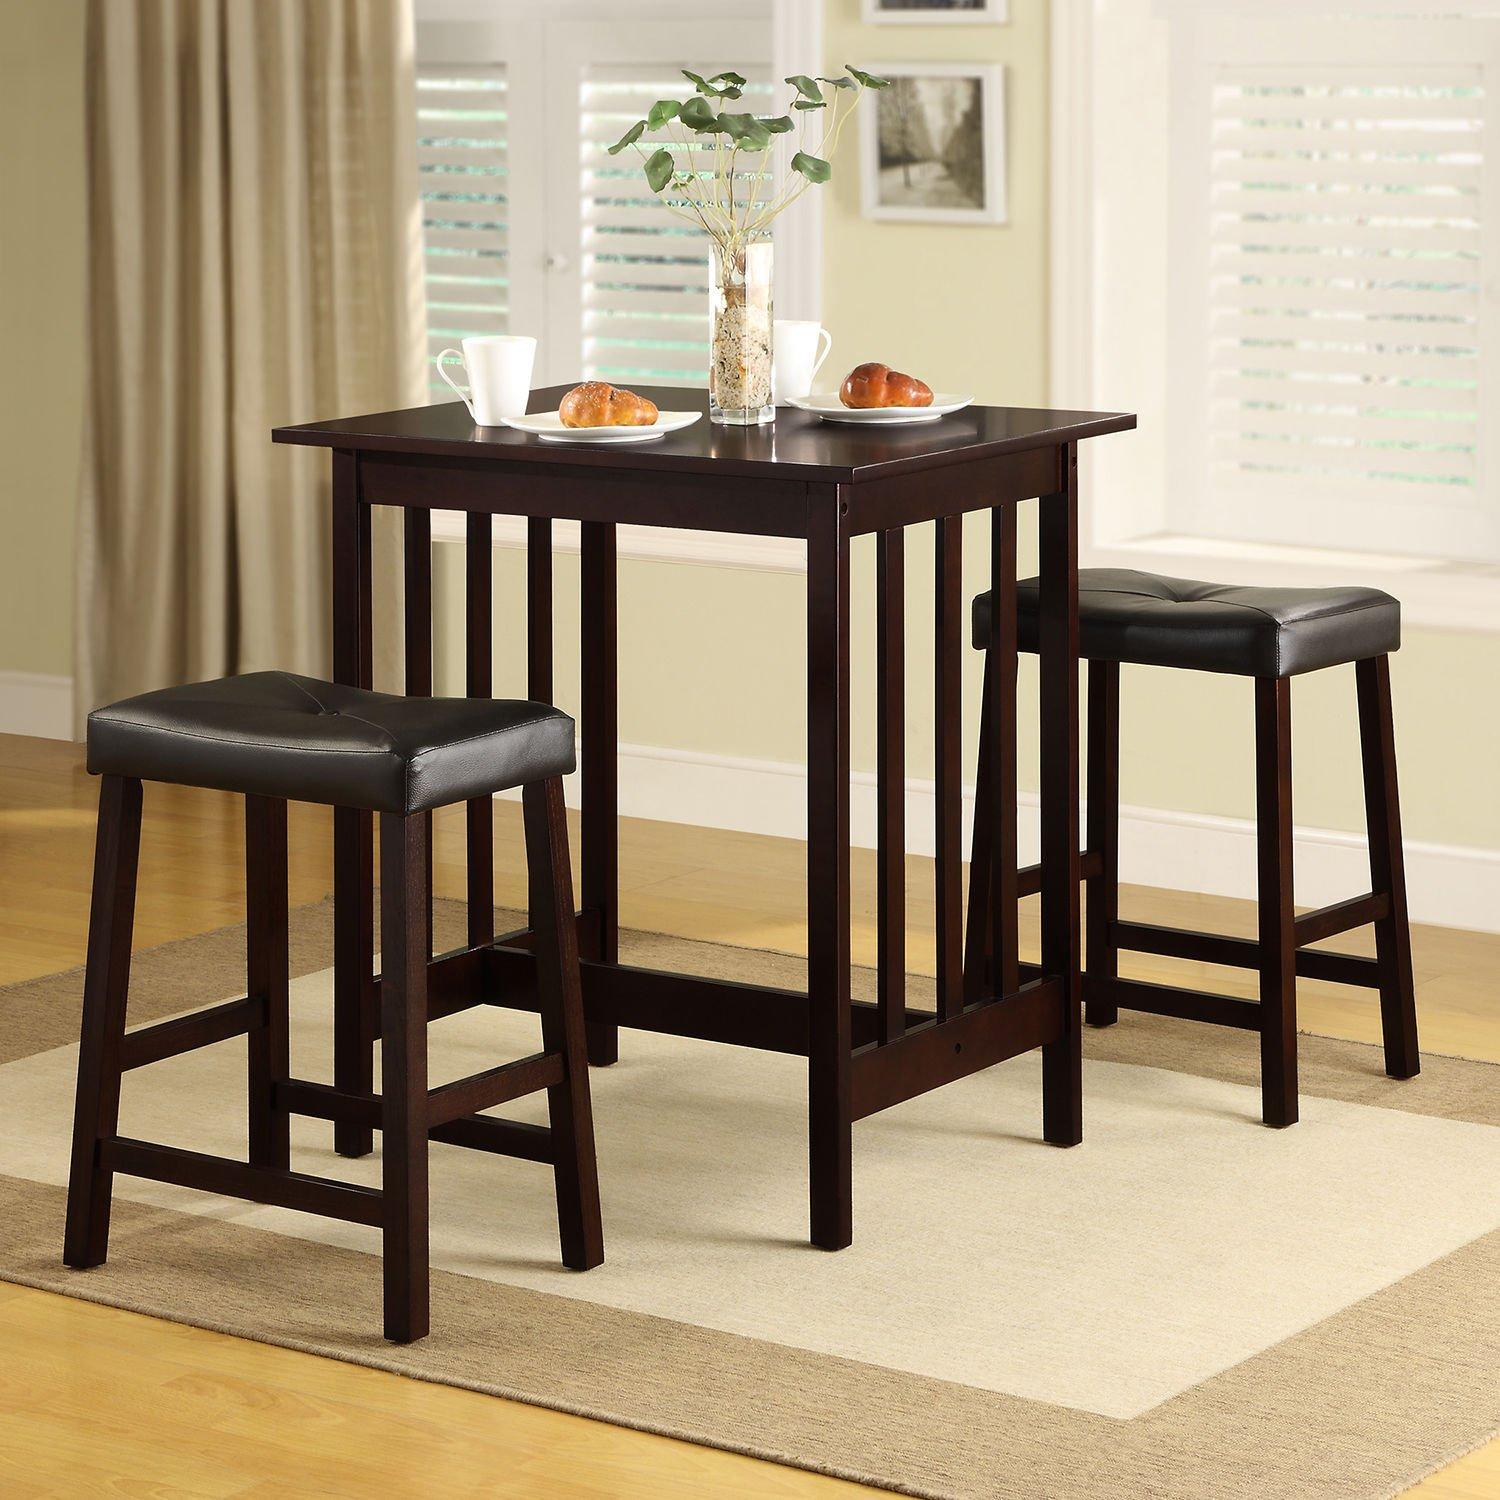 Cheap Dining Set Philippines For Sale Find Dining Set Philippines For Sale Deals On Line At Alibaba Com